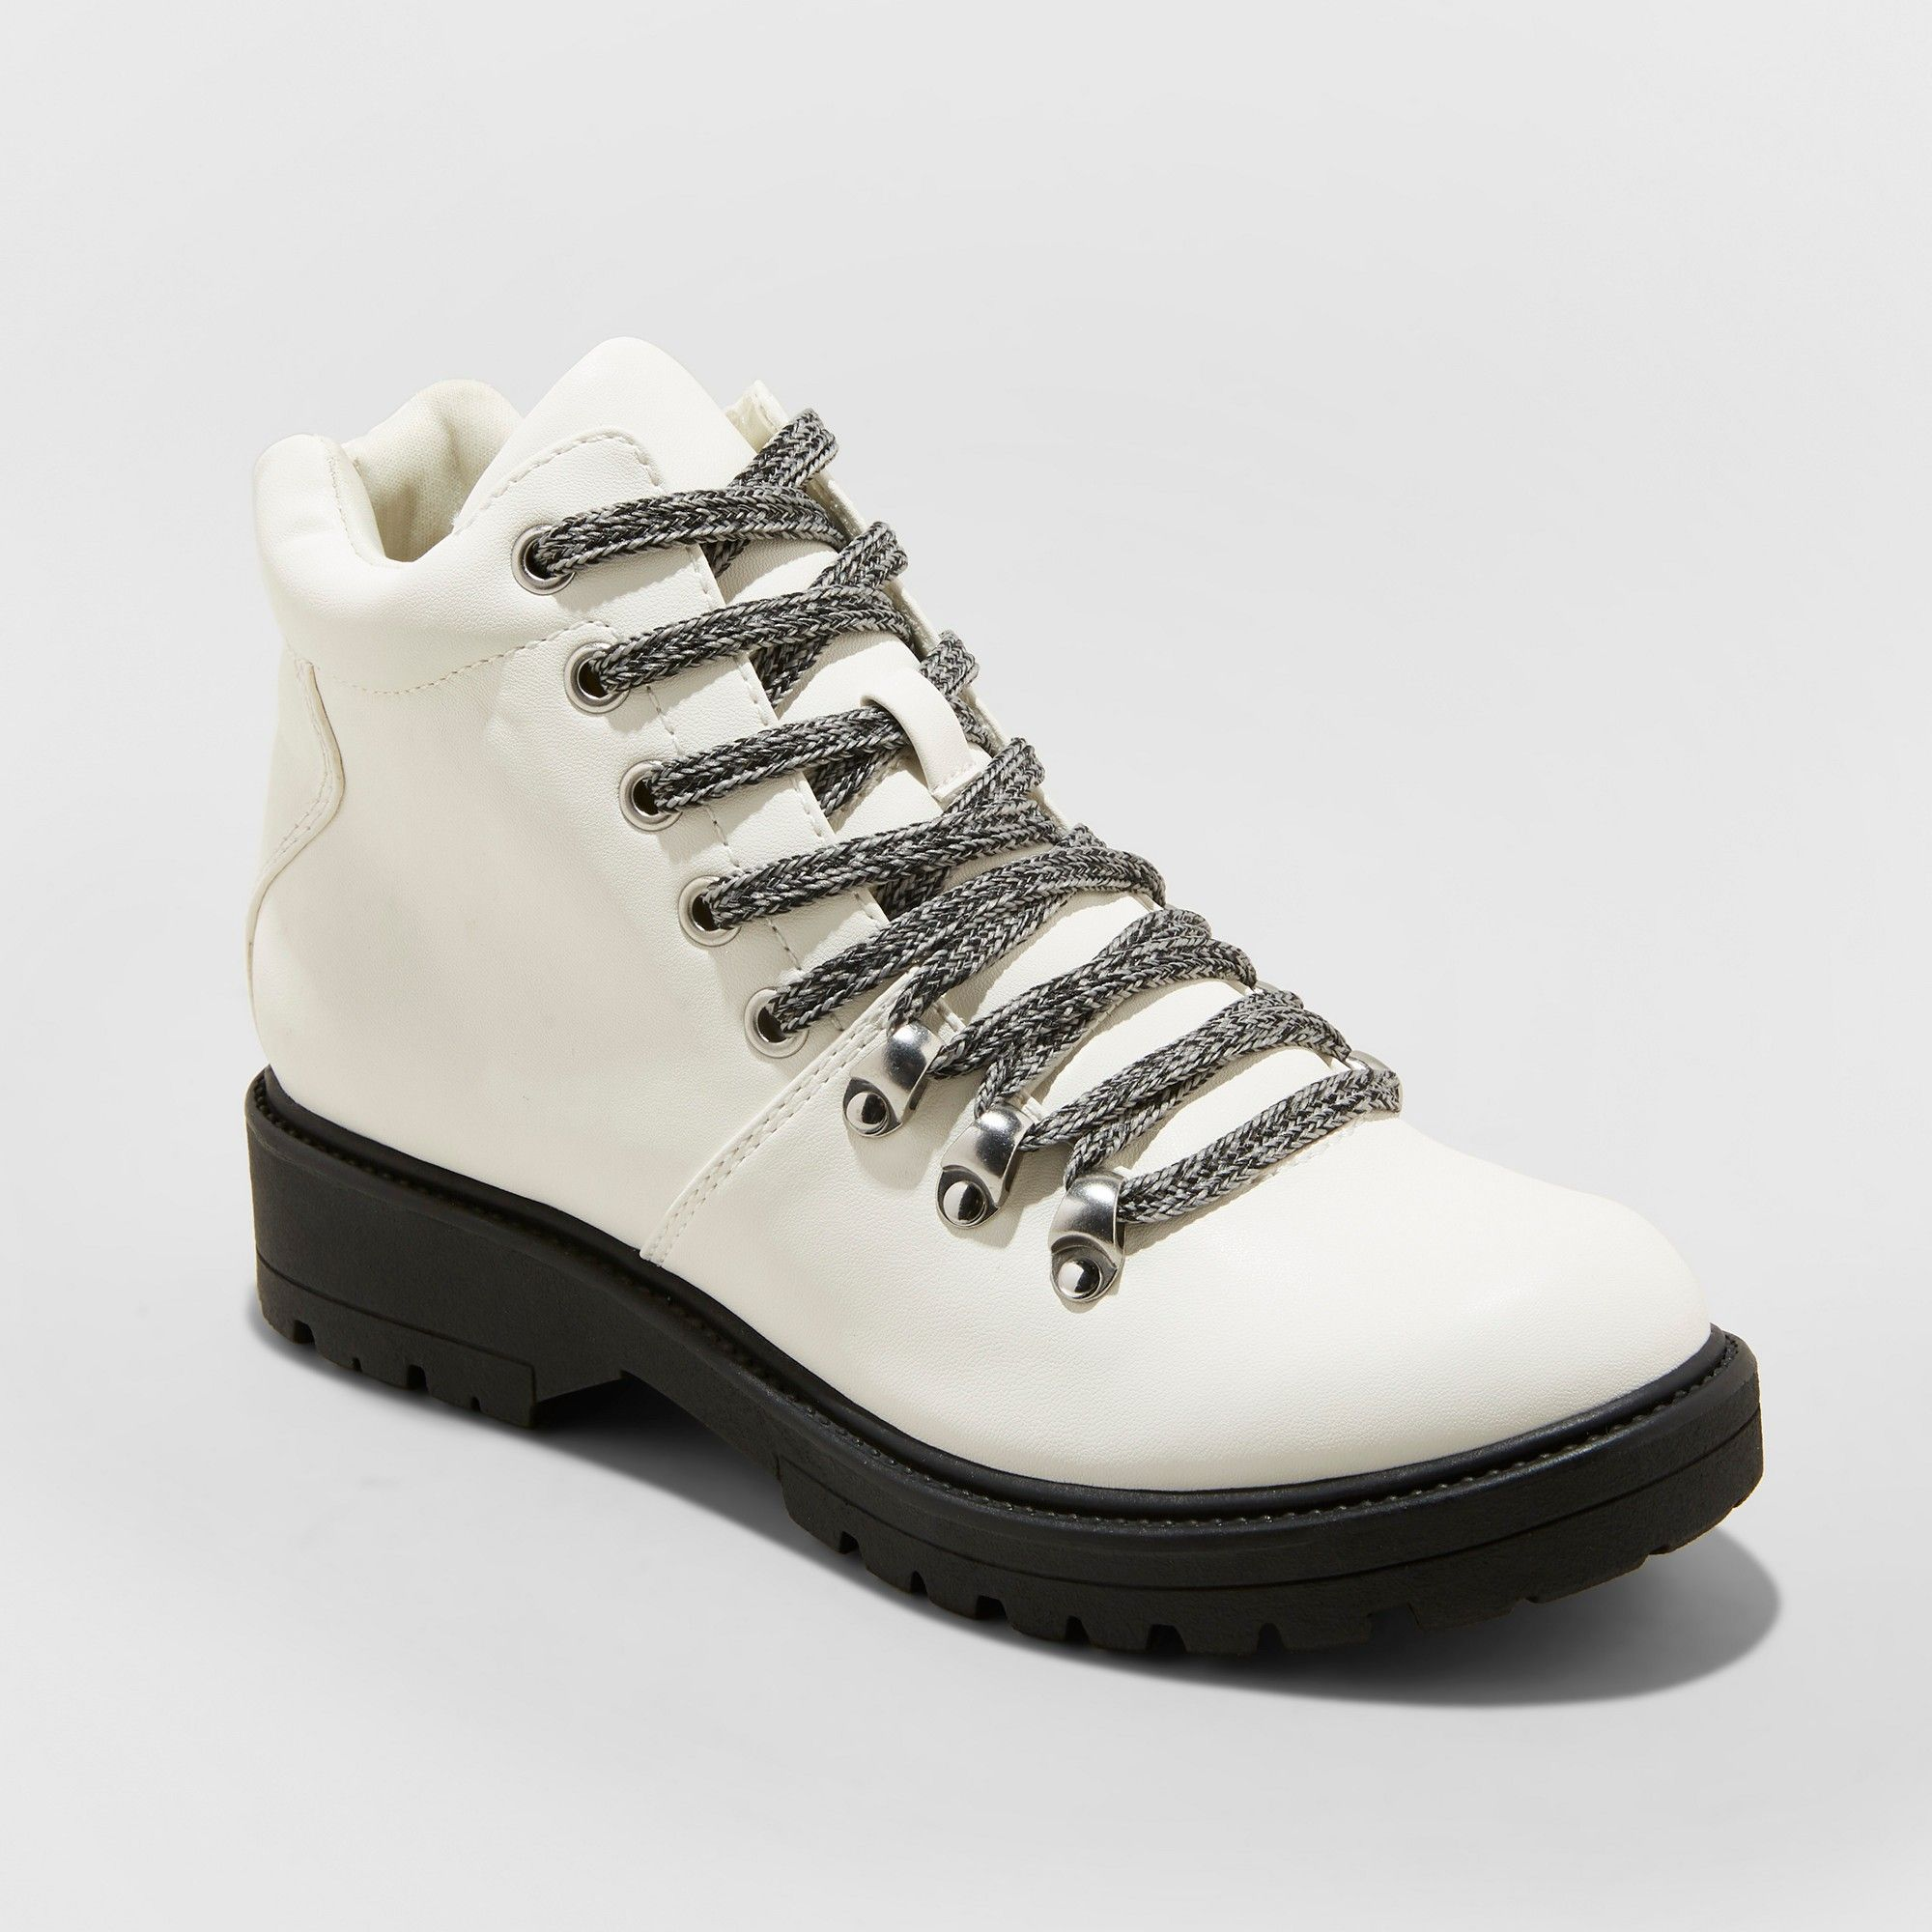 ab65a199f4b Women's Karri Lace Up Hiker Boots - Universal Thread White 12 ...